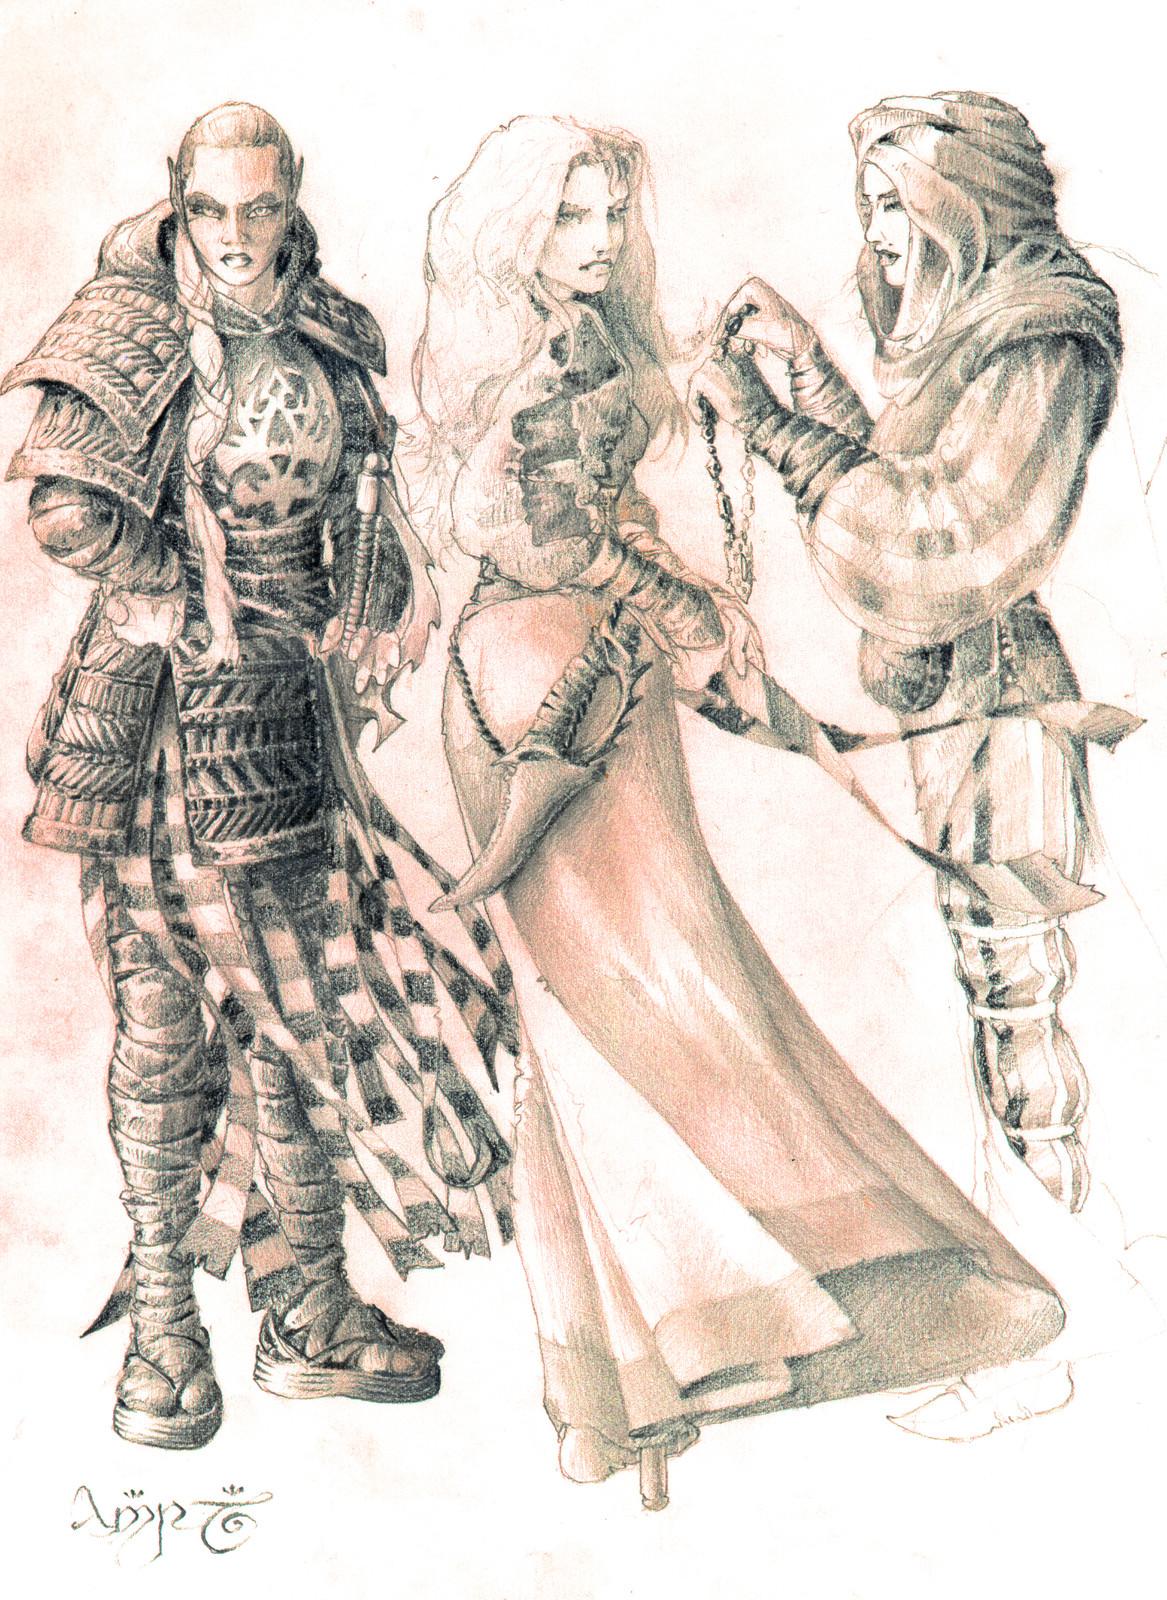 Elven maidens of different cultures.